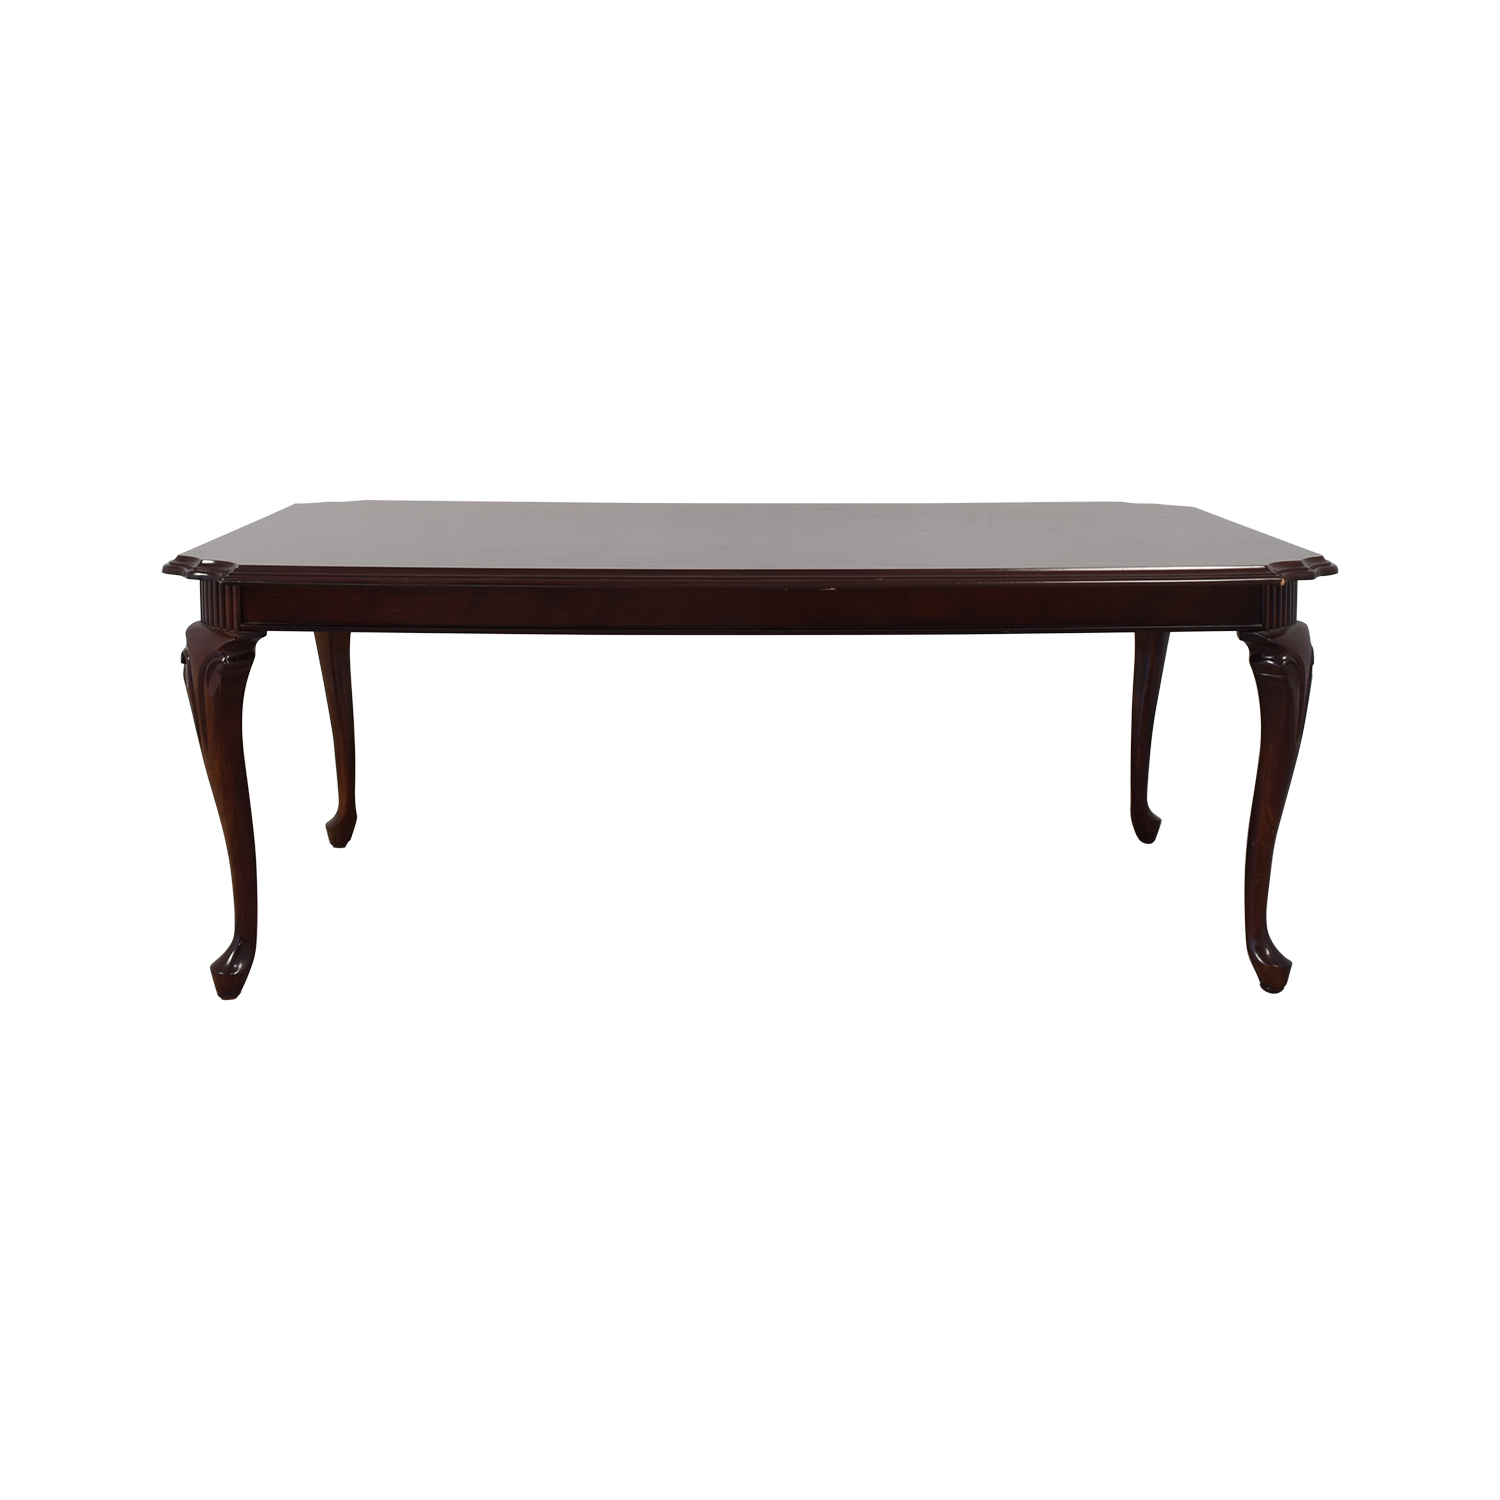 Dining Table with Cabriole Legs dark brown